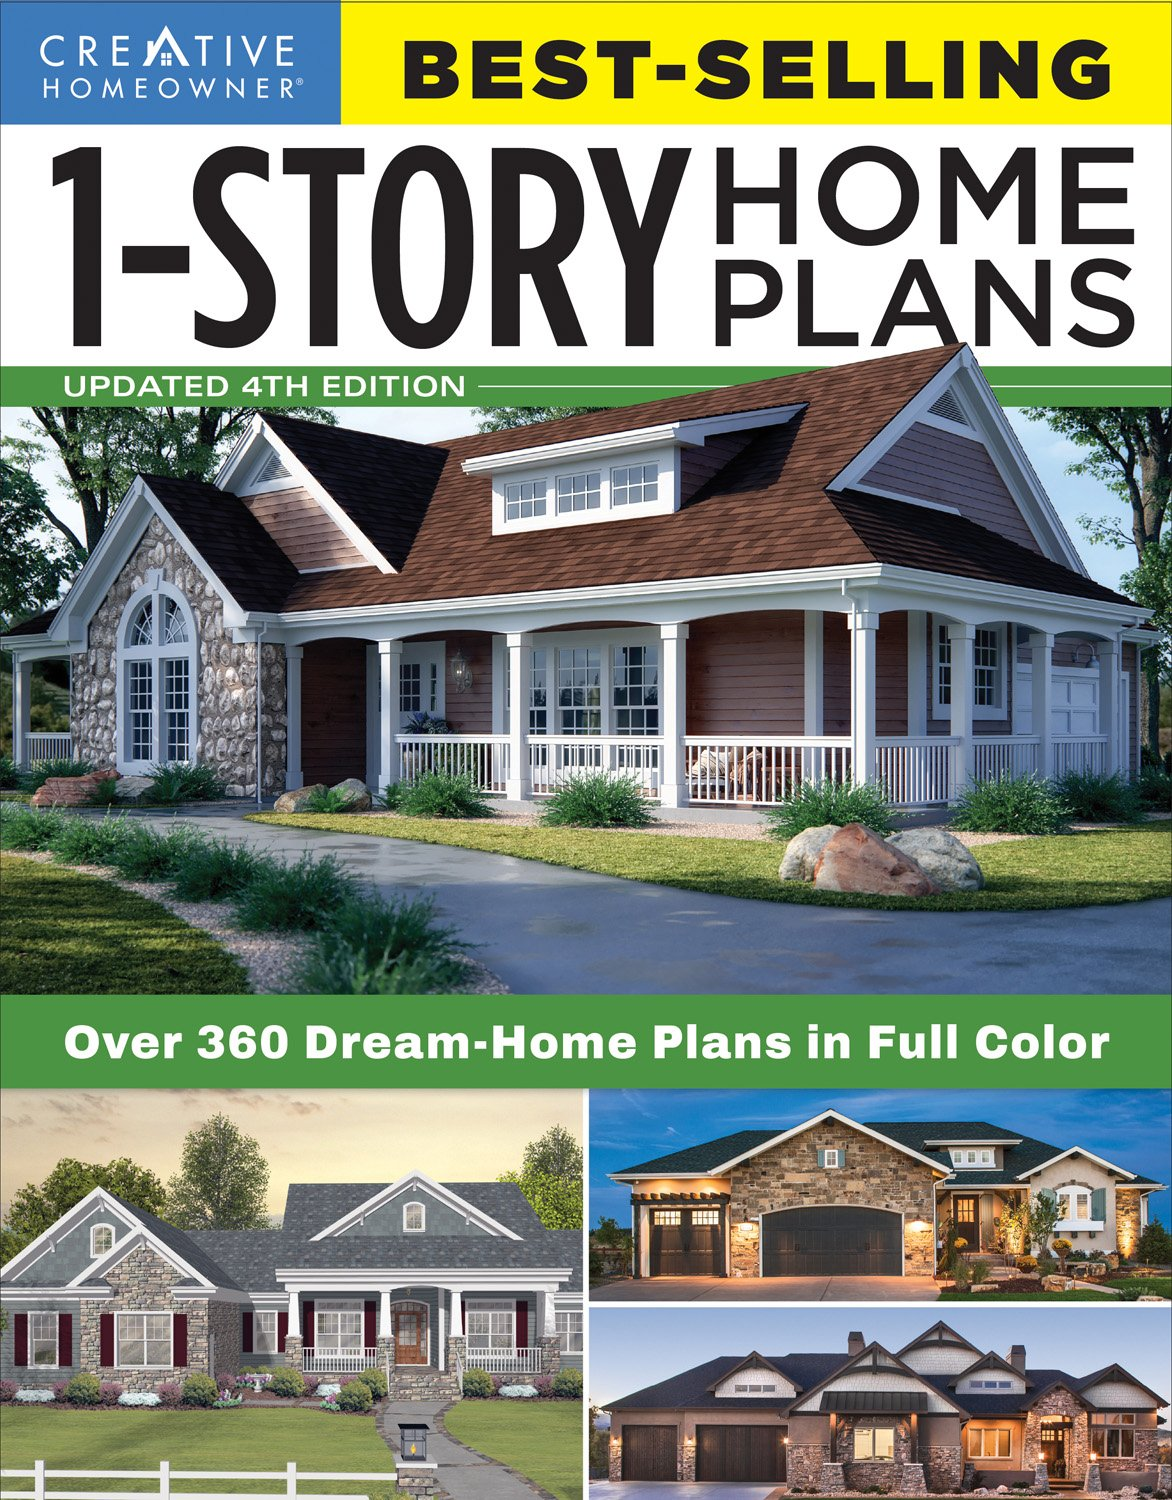 Best-Selling 1-Story Home Plans, Updated 4th Edition: Over 360 Dream-Home  Plans in Full Color: Editors of Creative Homeowner: 0023863080385: Books -  Amazon. ...